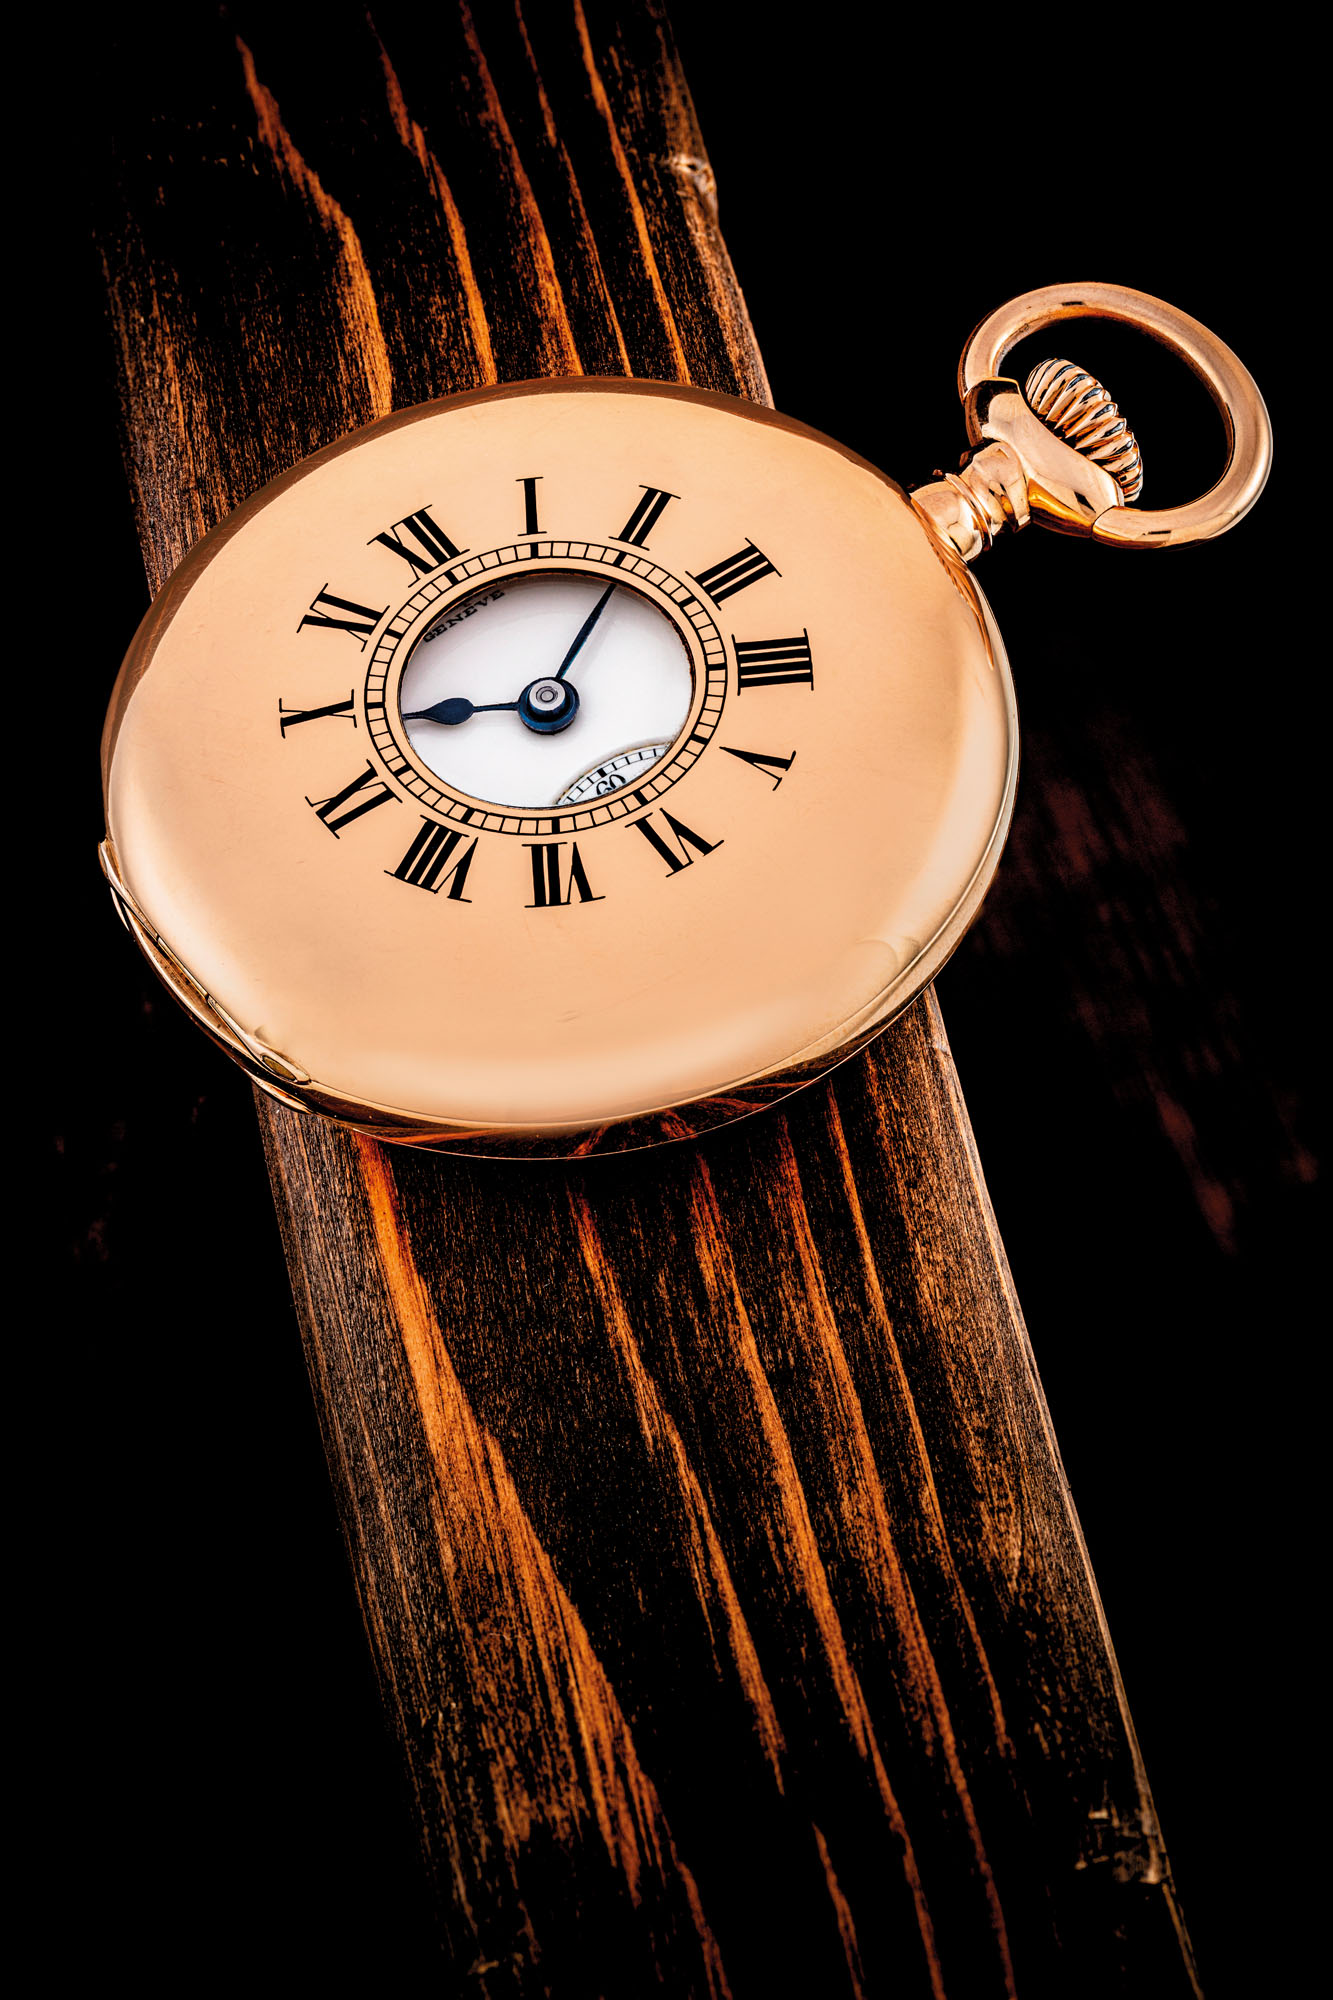 PATEK PHILIPPE. AN 18K PINK GOLD KEYLESS LEVER WATCH WITH ENAMEL DIAL